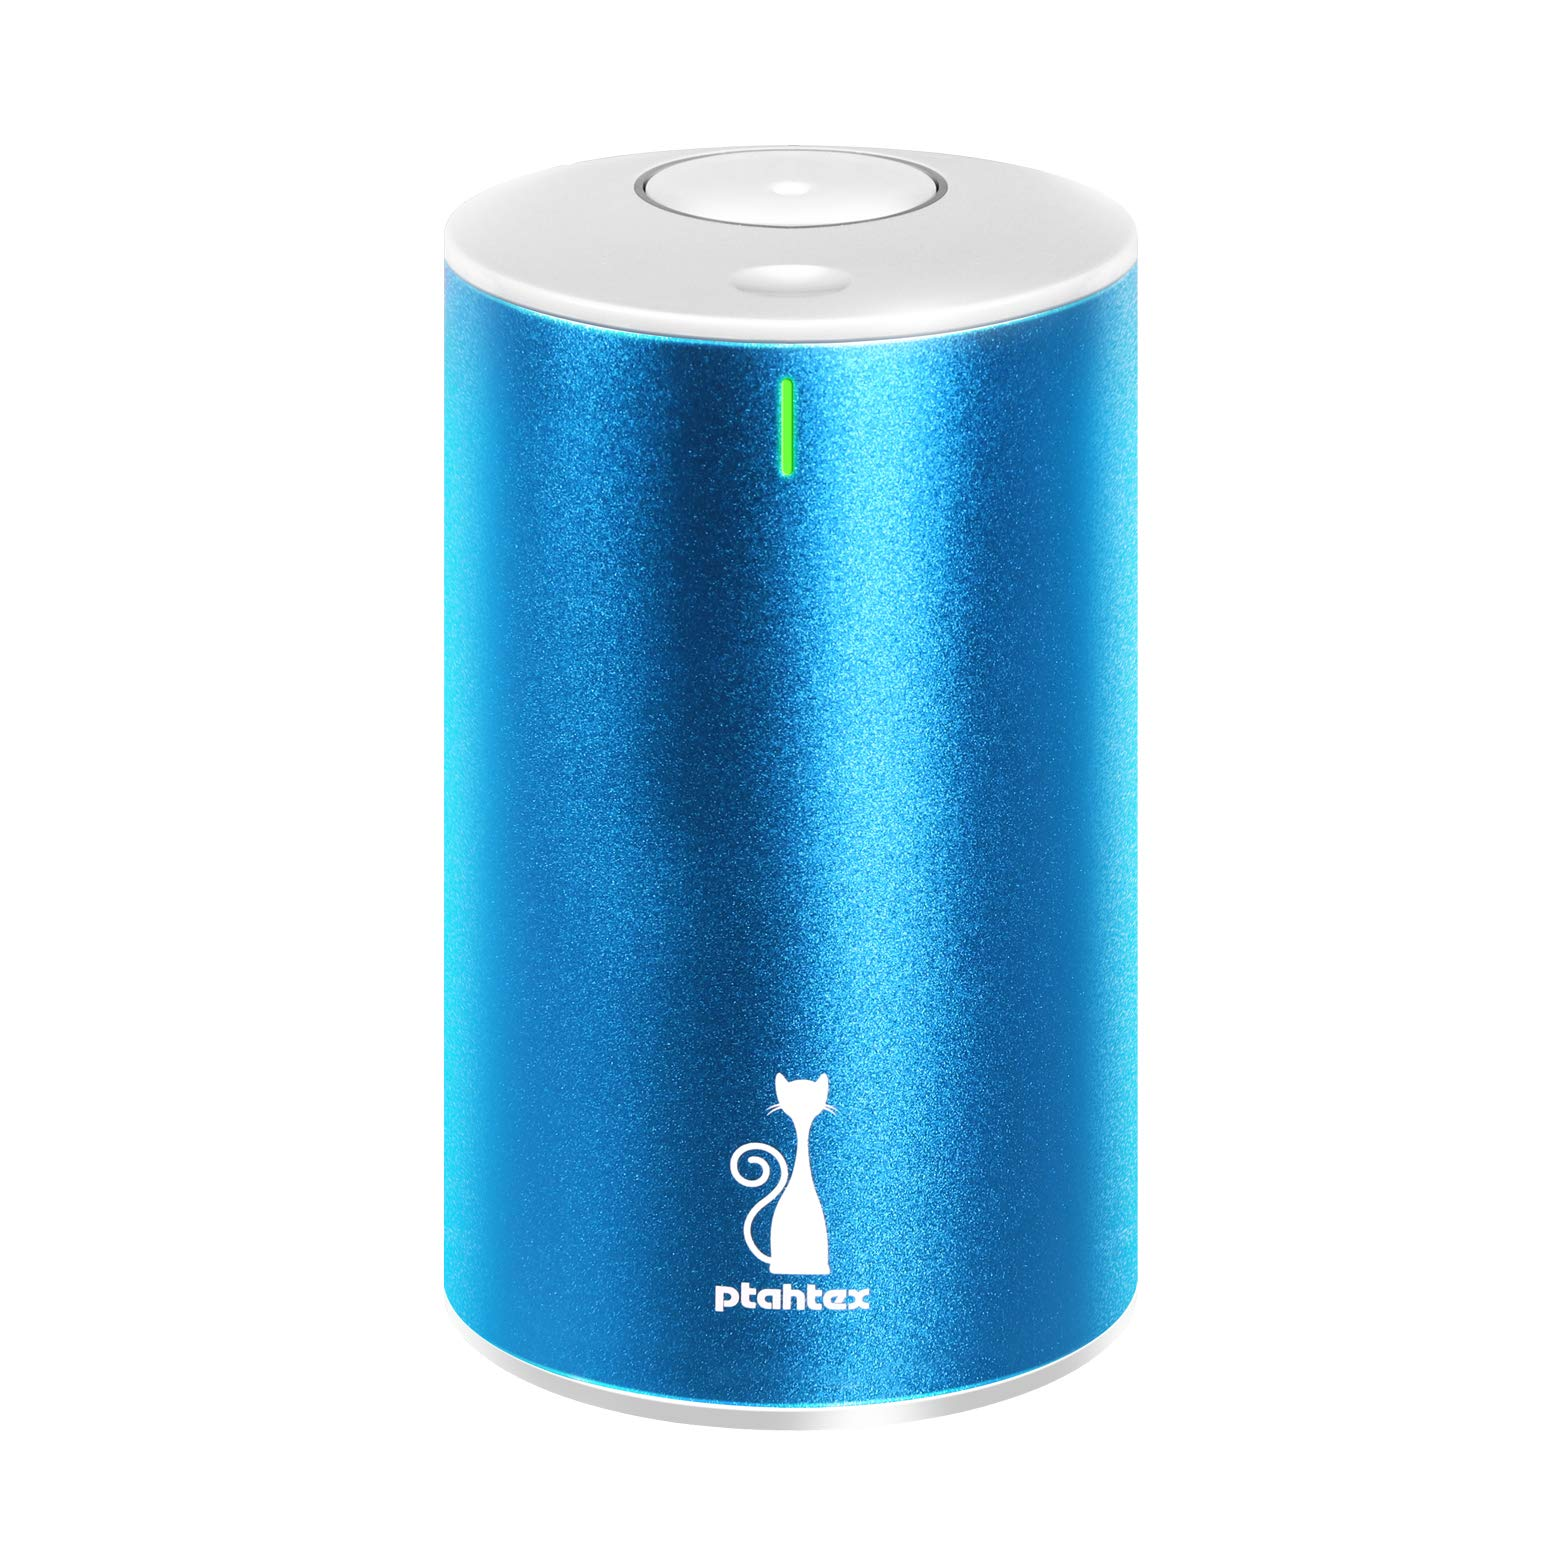 PtahTex 2nd Version Waterless Essential Oil Diffuser,Battery Operated Aromatherapy Diffuser, Portable Perfume Atomized, AquaBlue, Car, Home, Office, Yoga